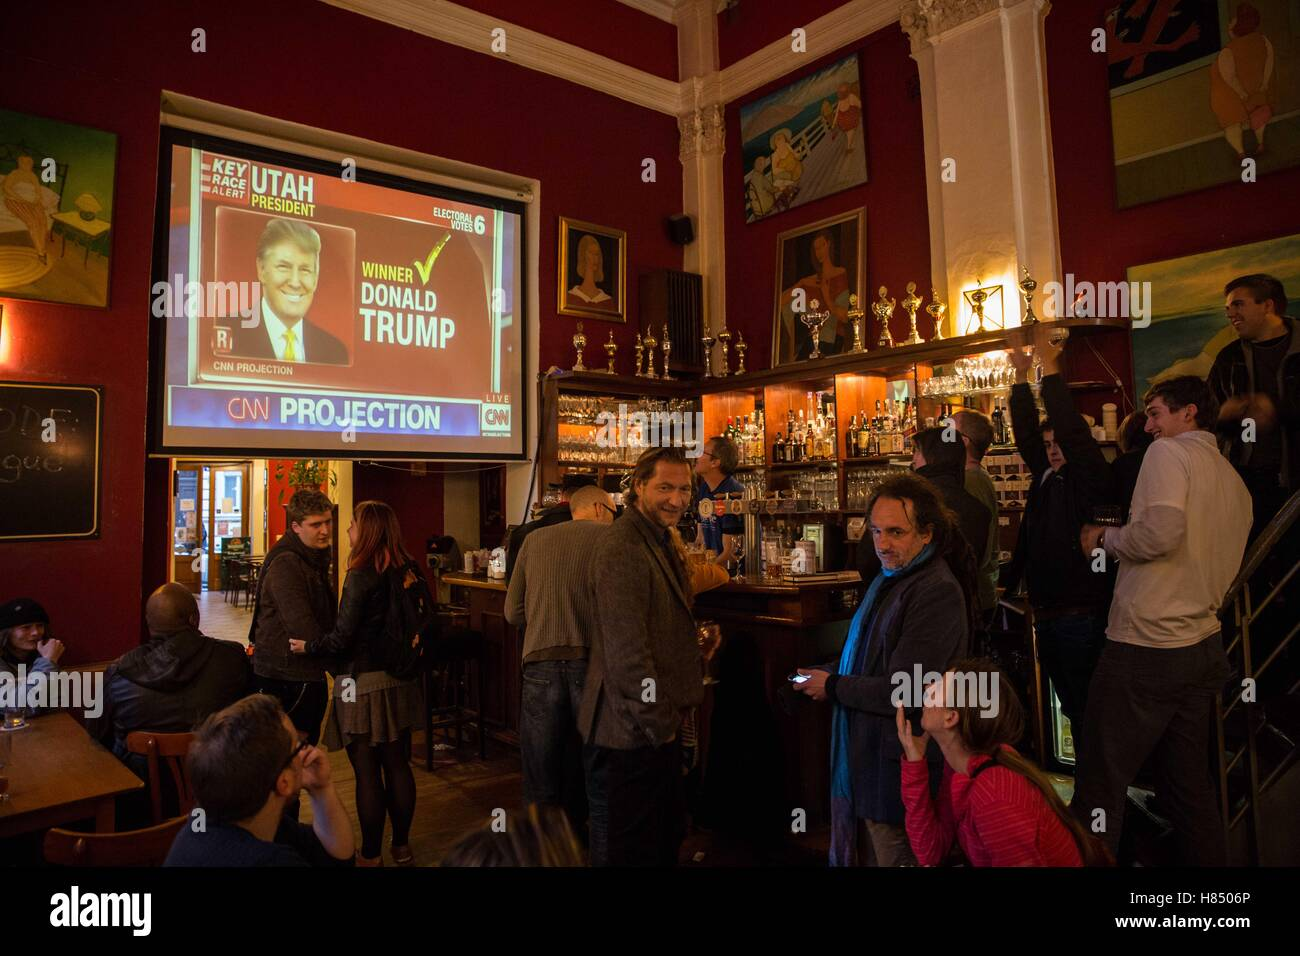 Prague, Czech Republic. 9th Nov, 2016. The Americans that lives in Czech Republic were following the US elections - Stock Image